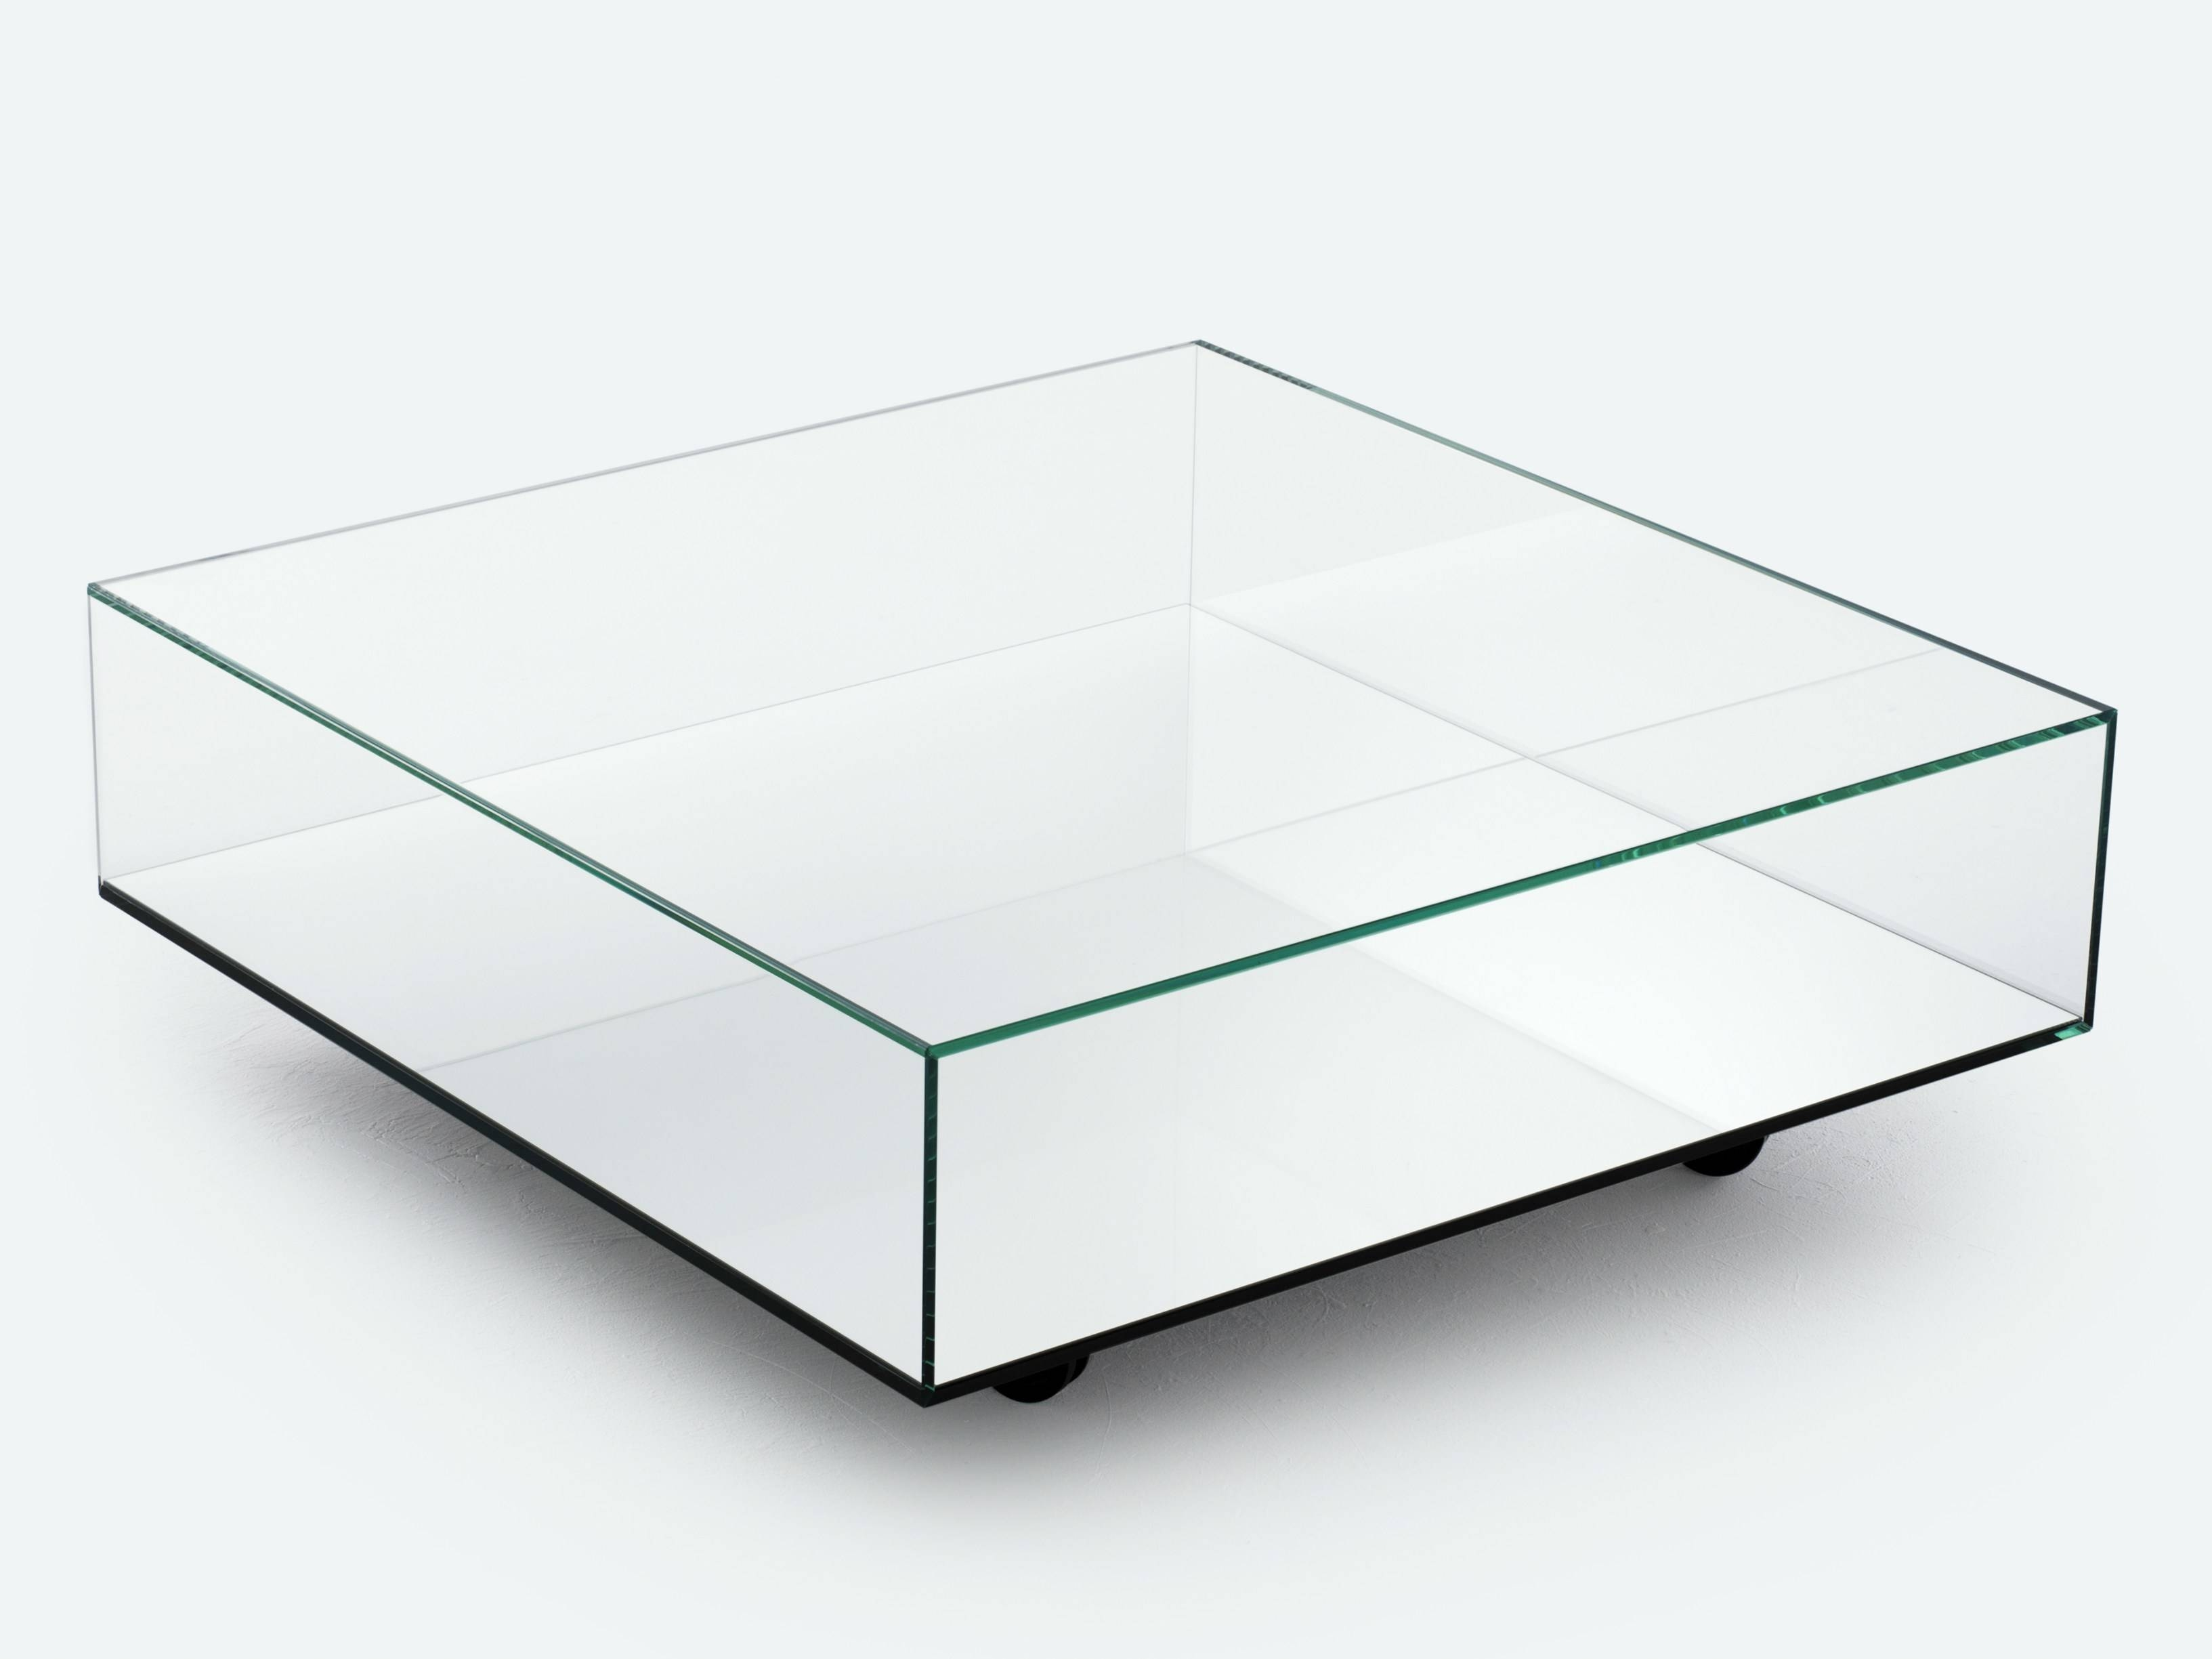 Low Mirrored Glass Coffee Table Reflectbensen - Jericho Mafjar inside Low Glass Coffee Tables (Image 23 of 30)